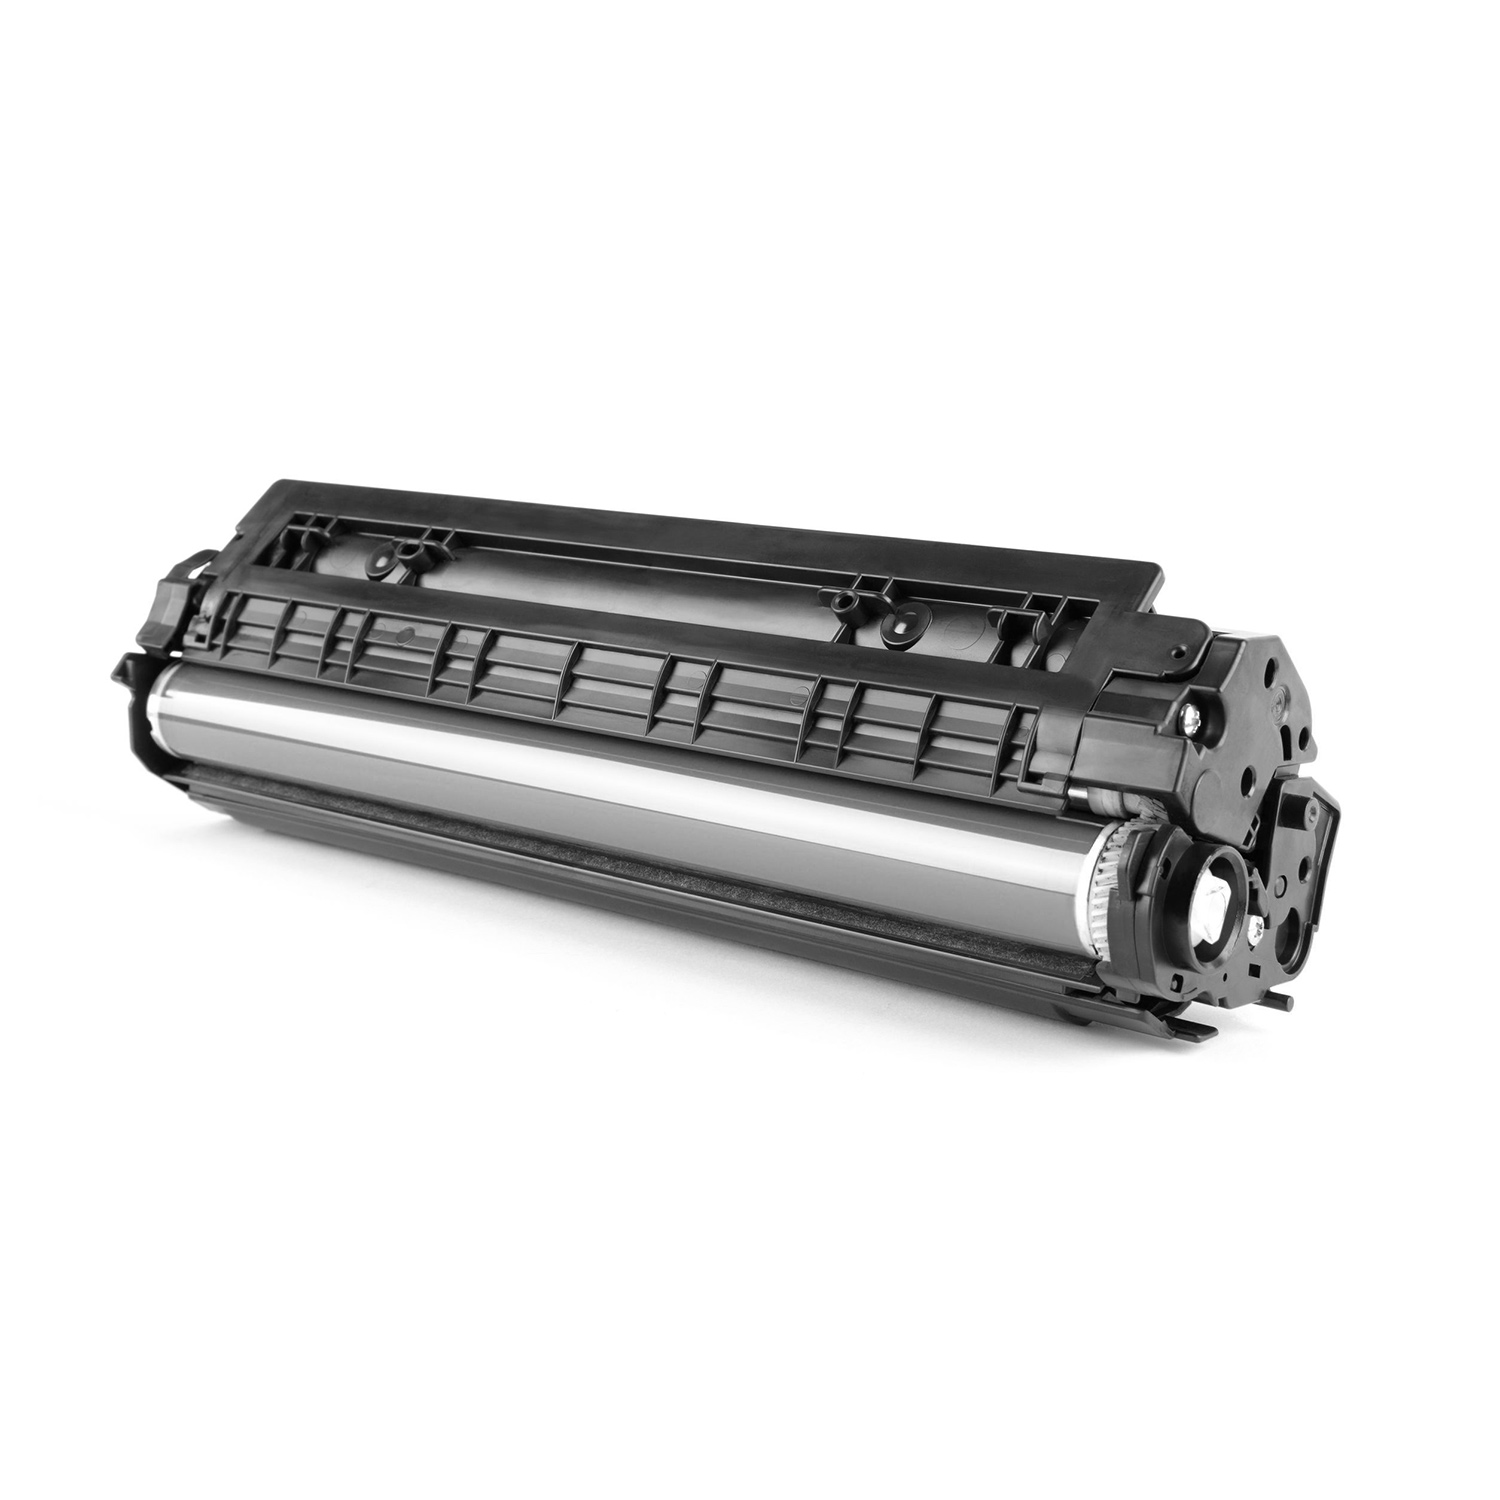 Brother TN-2220 XXXL Toner (1x 5.200 Seiten) Brother Trommel DR-2200 (1x 12.000 Seiten) DoppelPack Kompatibel new